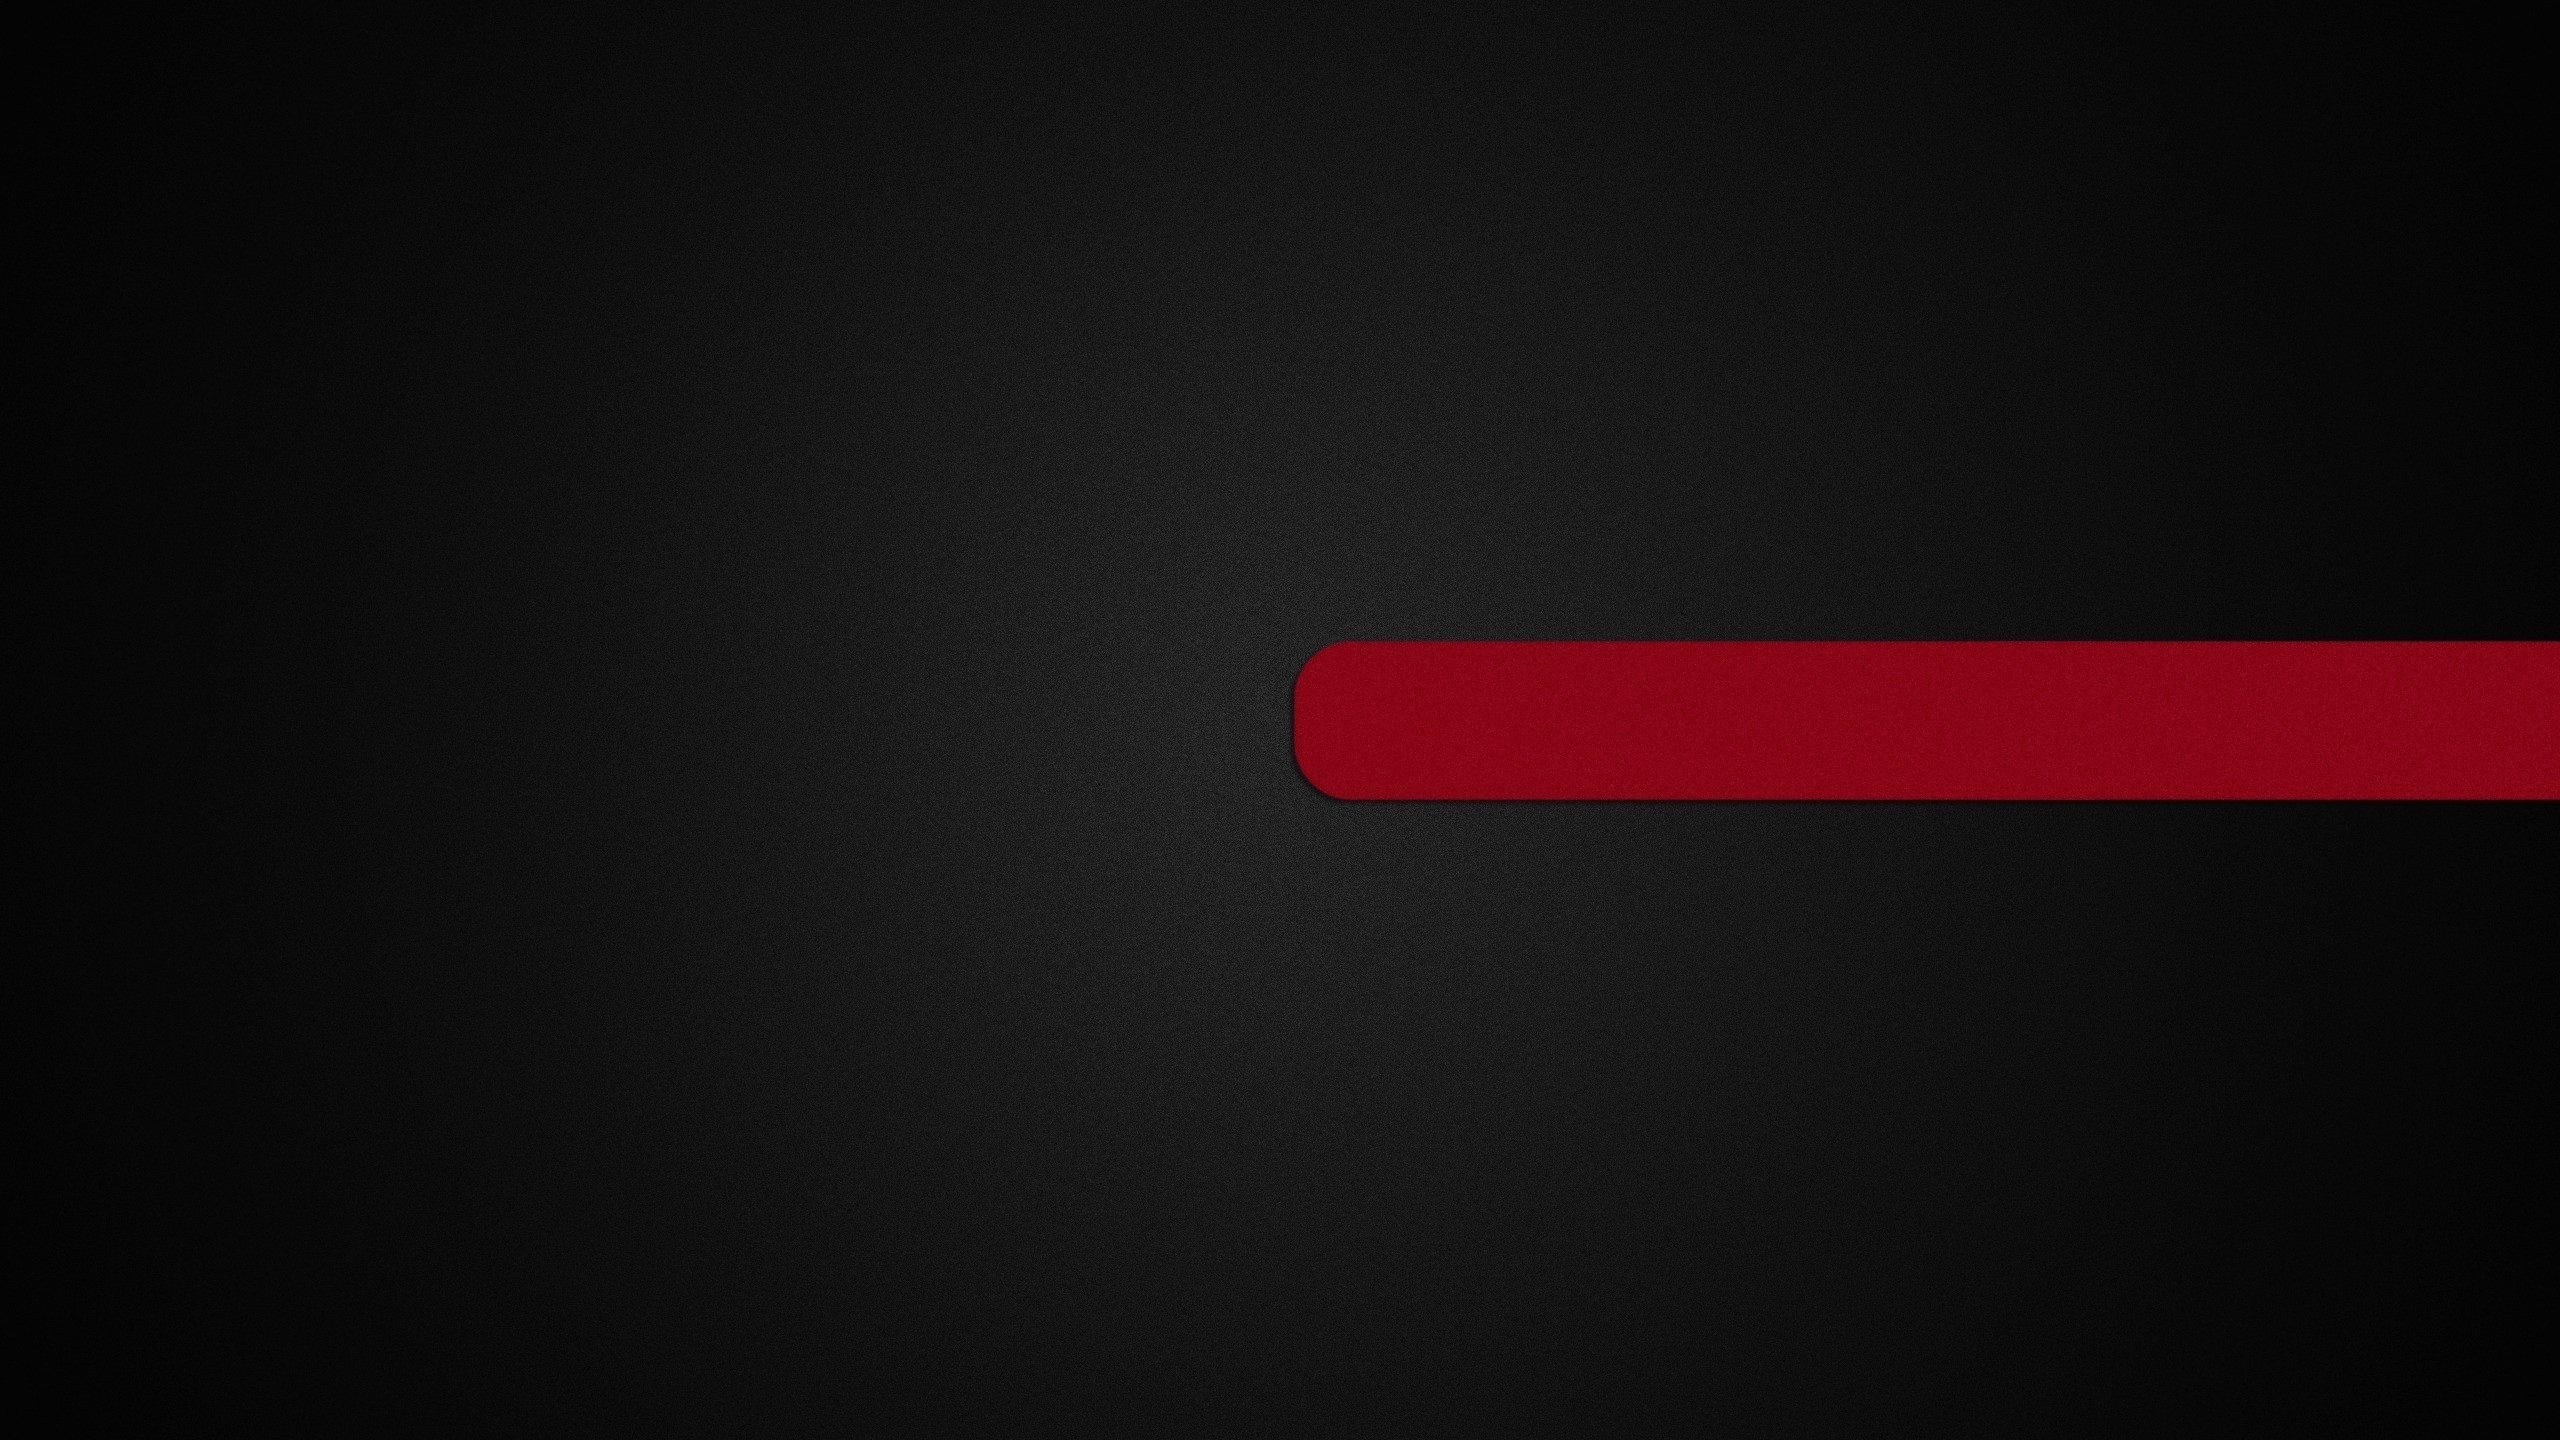 HD-Black-And-Red-Backgrounds